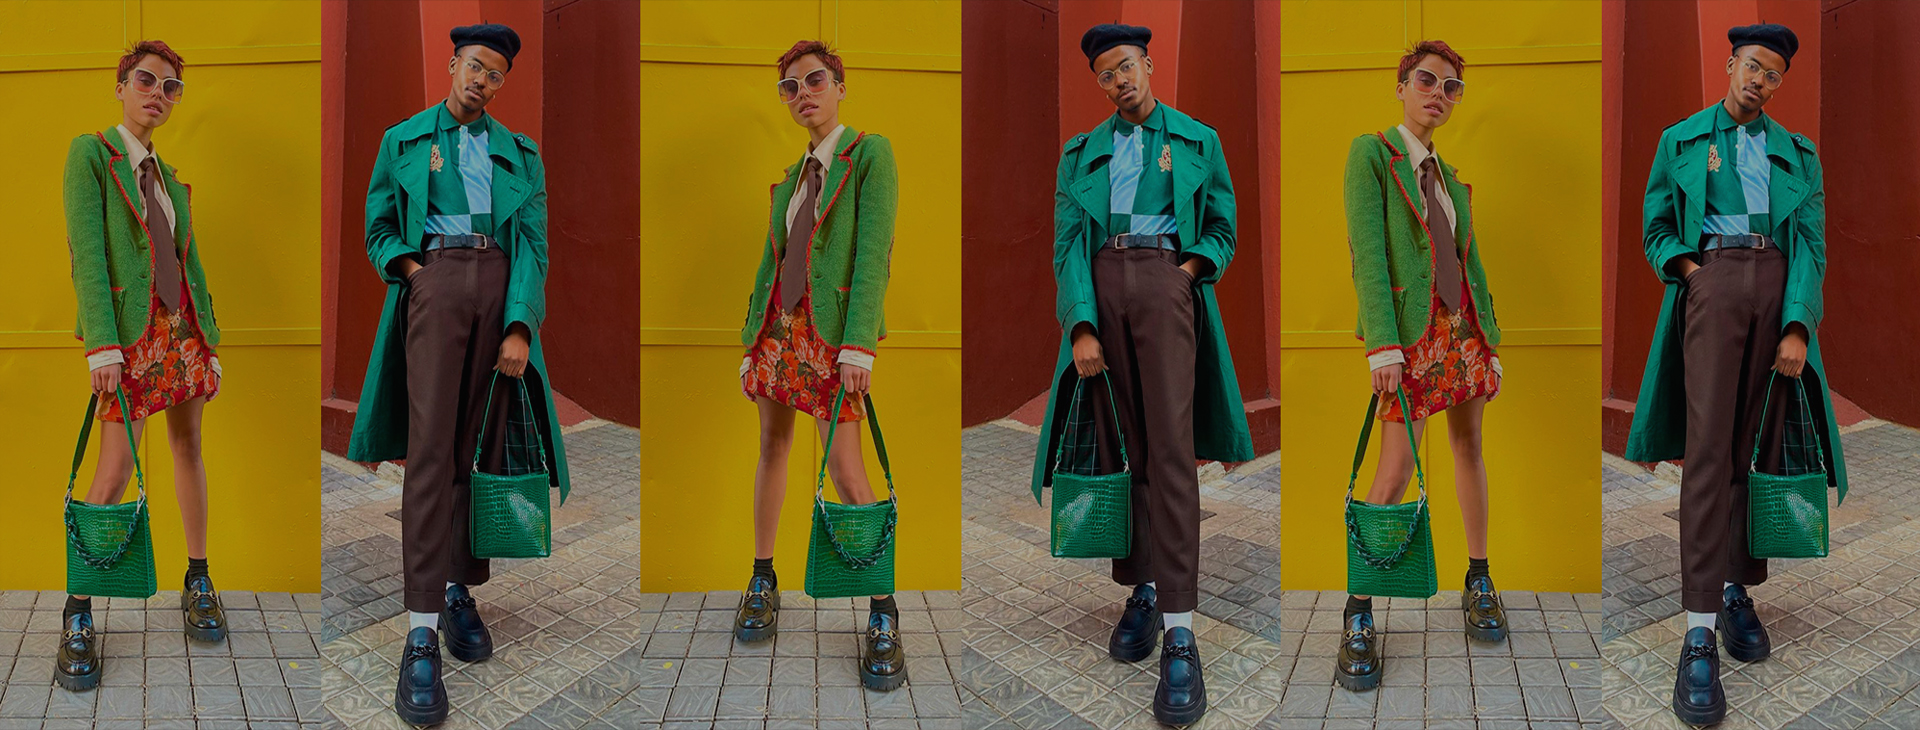 Owners of Only Thrift, creatives Leago Scars and Nadine share leather drips and the desire to raise consumer awareness.